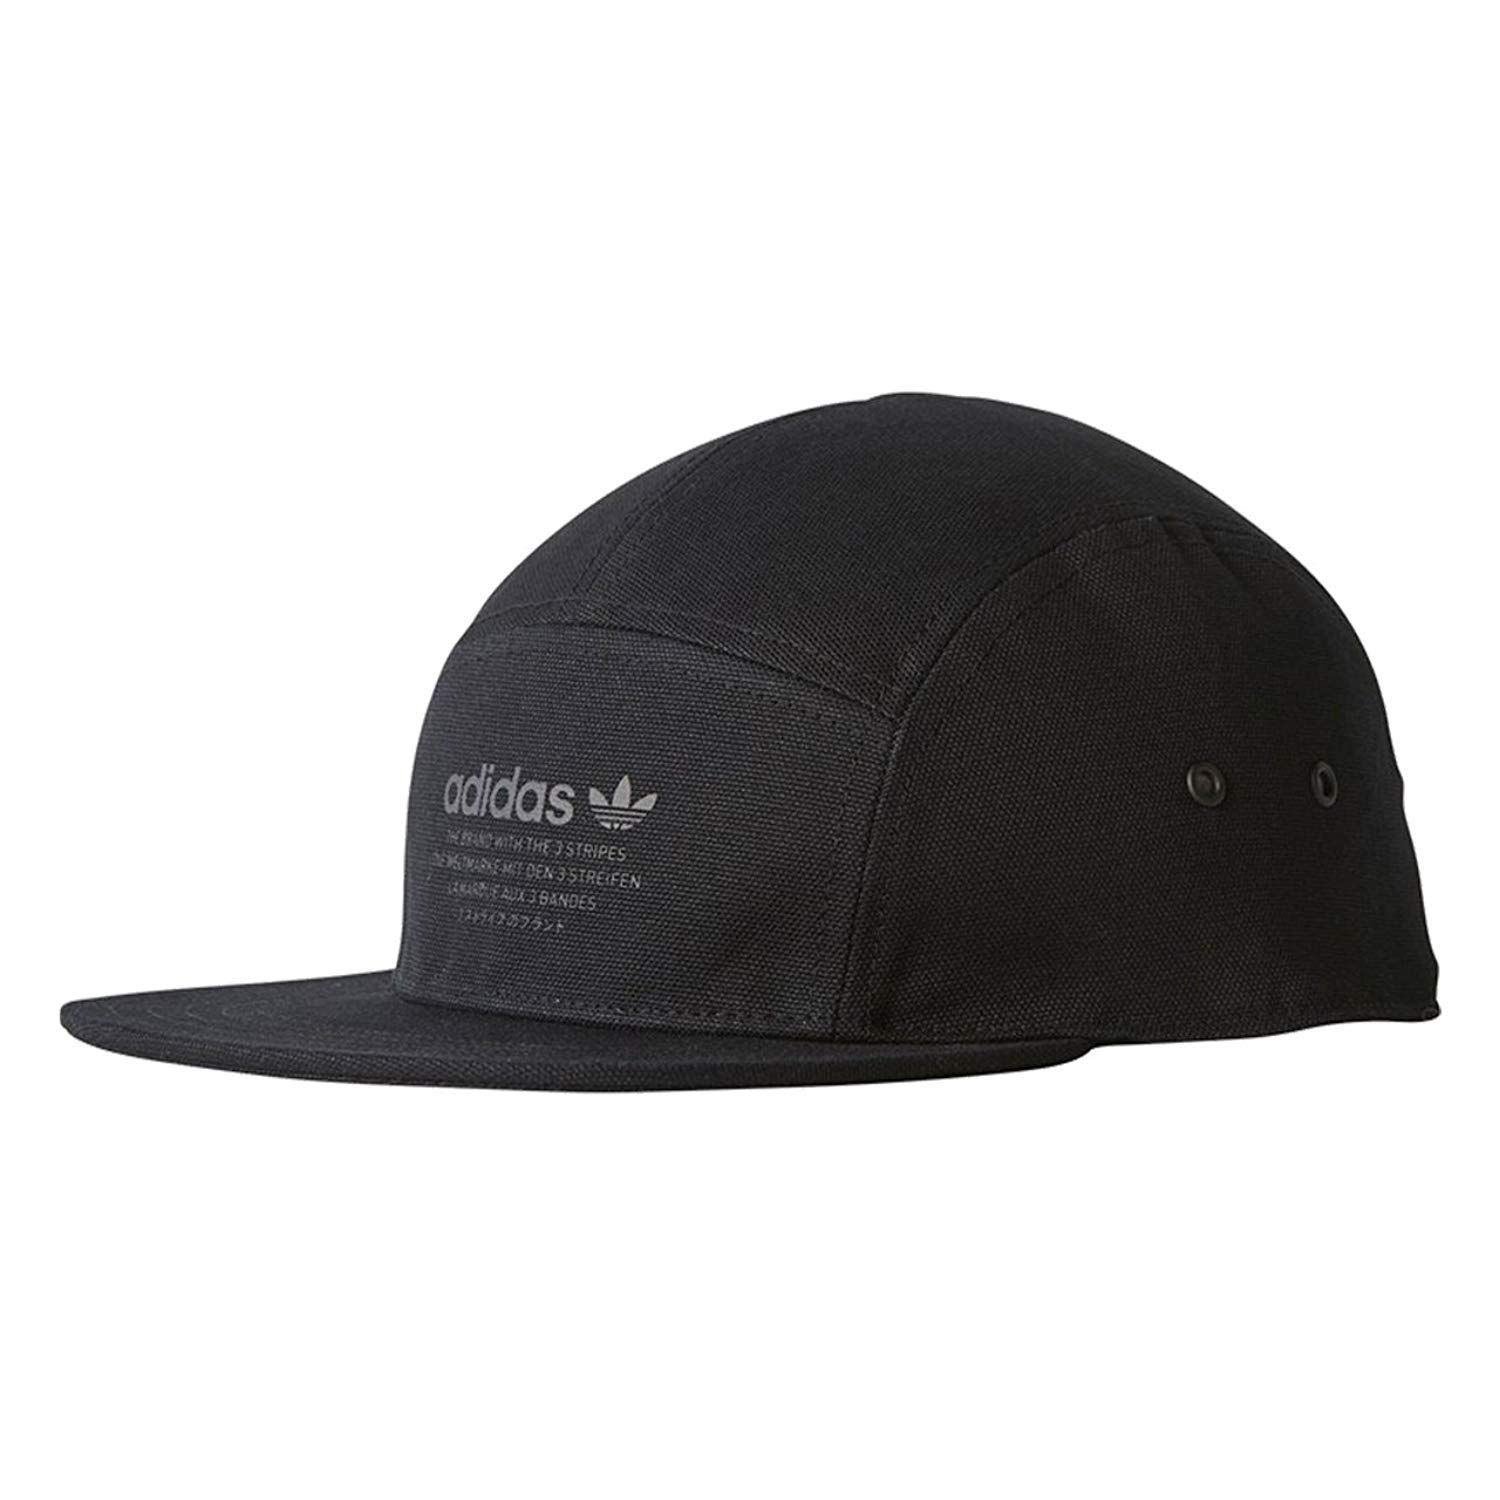 f25da9bffbc adidas Originals NMD Cap Running 5-Panel Black Black BR4685 at Amazon Men s  Clothing store